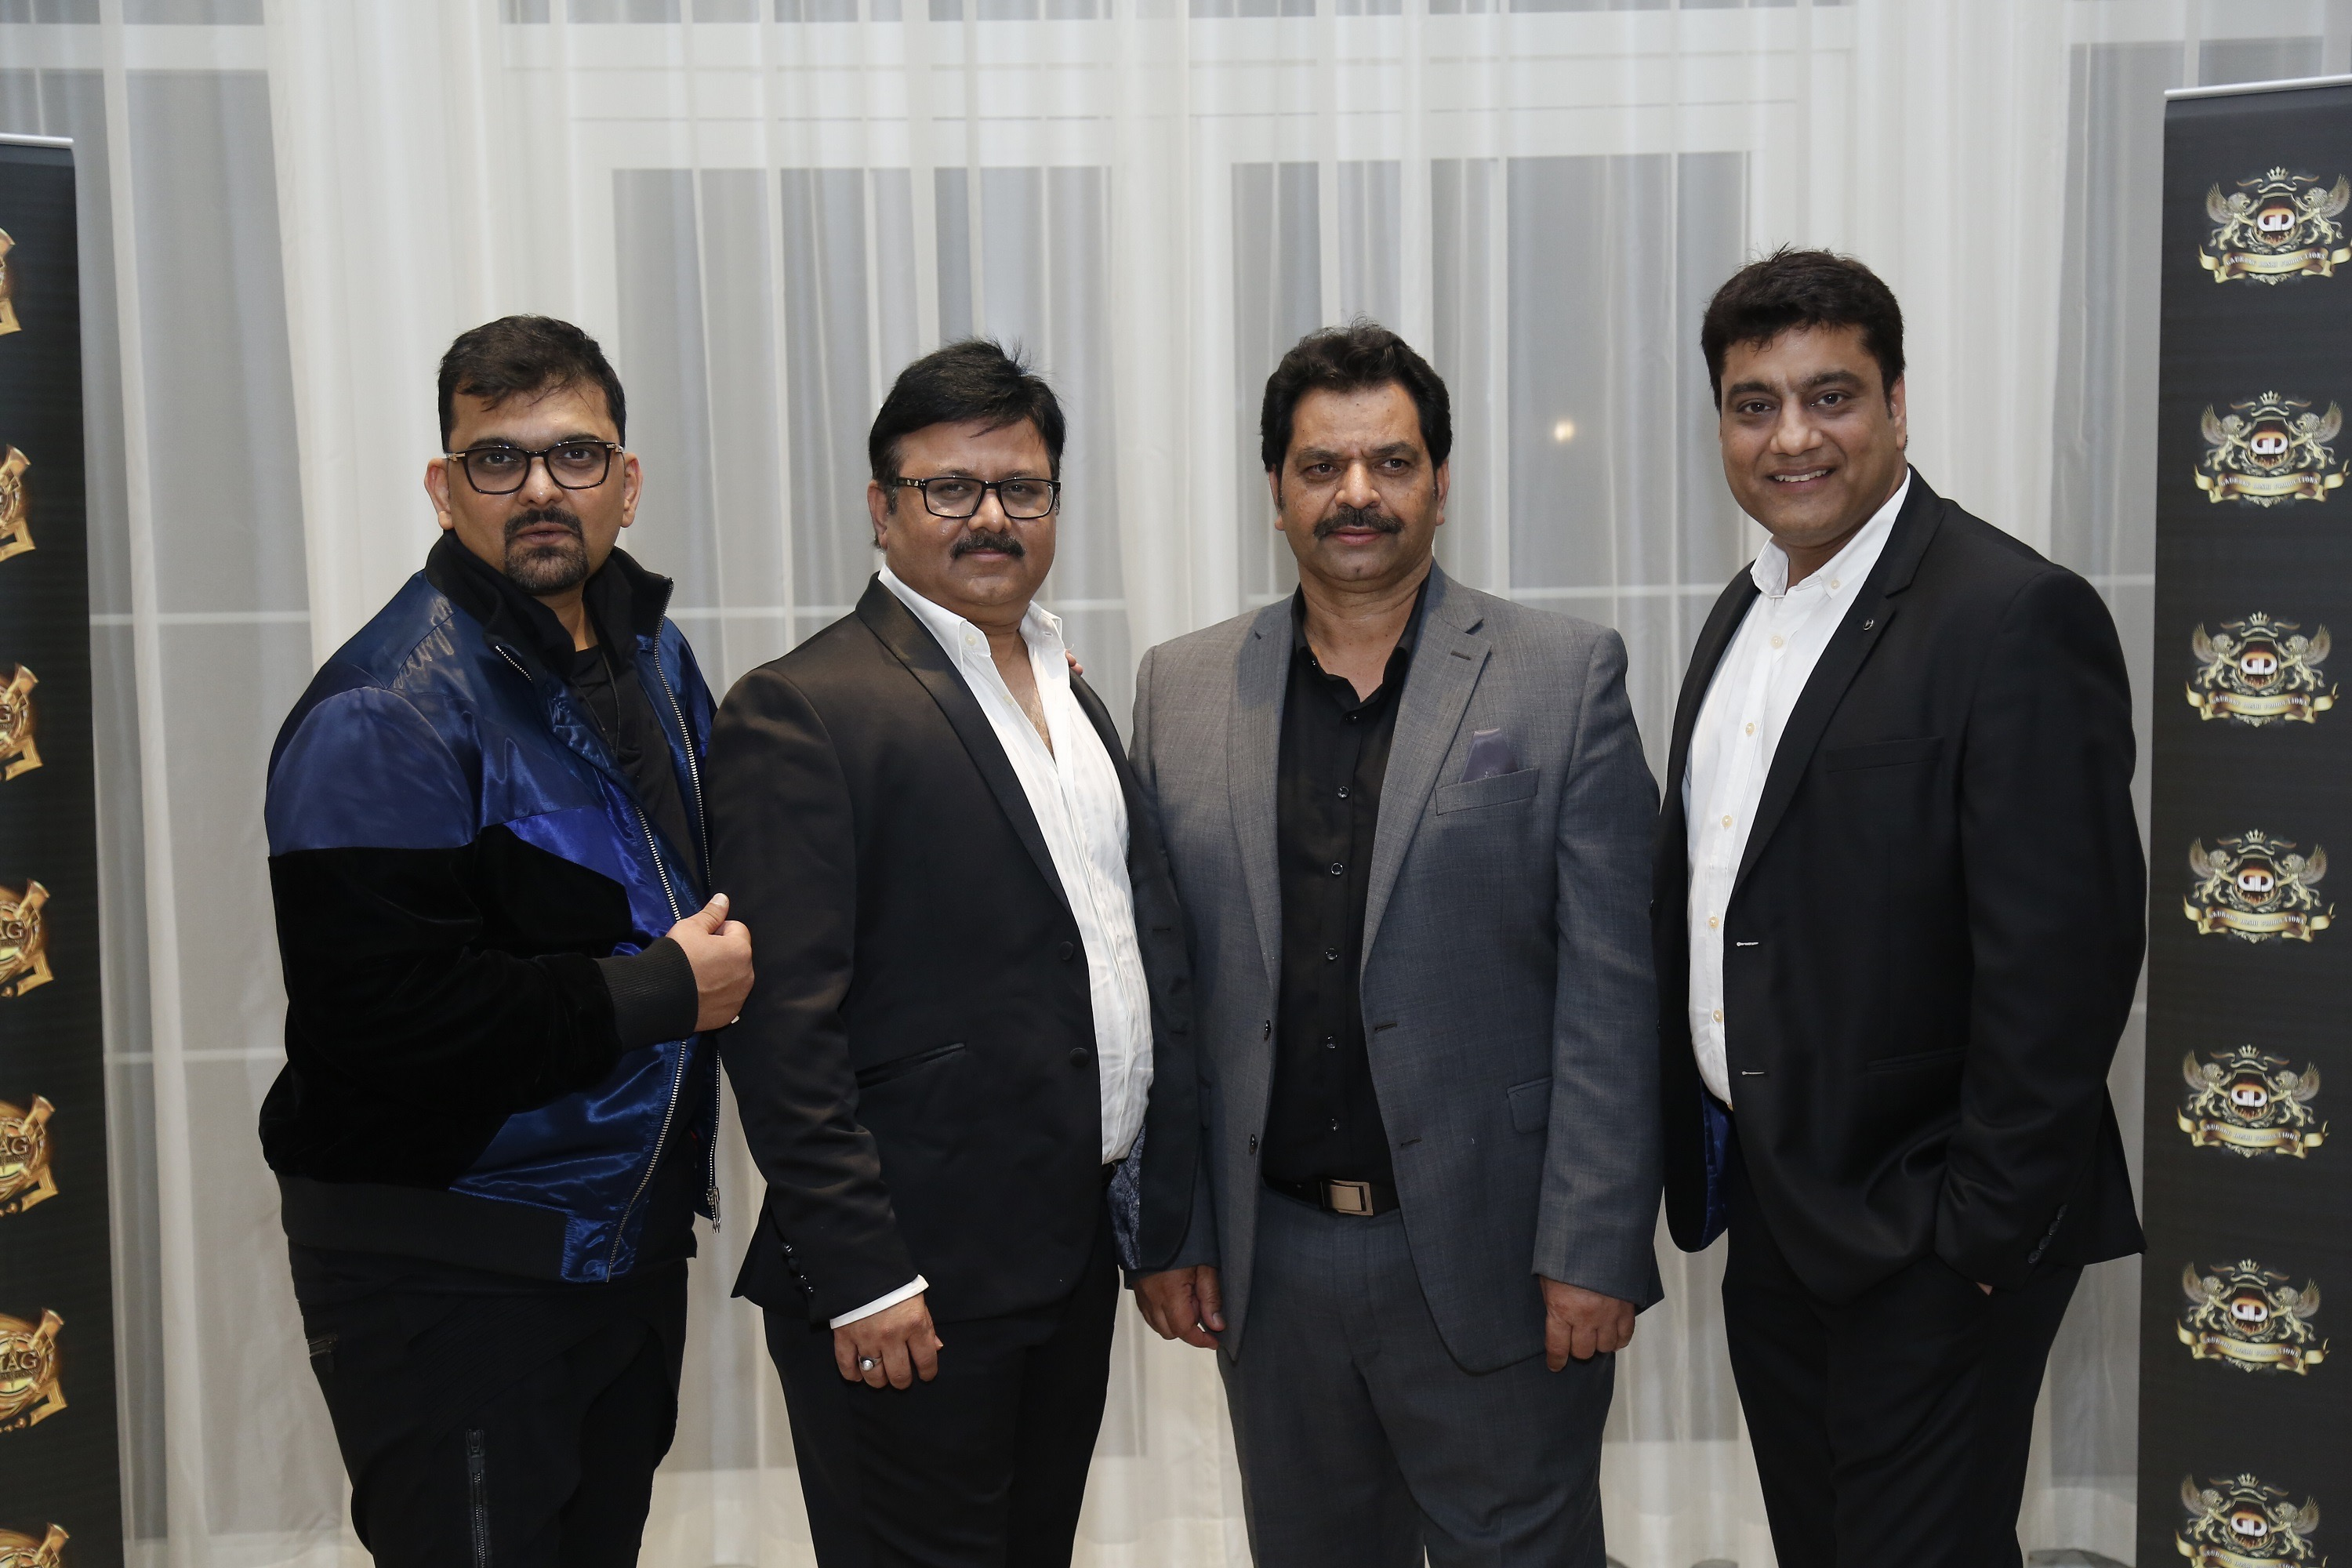 Entertainemnt entrepreneur Munir Awan Sheikh (Left), Theyab Bin Khalifa Bin Hamdan Al Nahyan (Middle), and Producer Gaurang Doshi (Right)